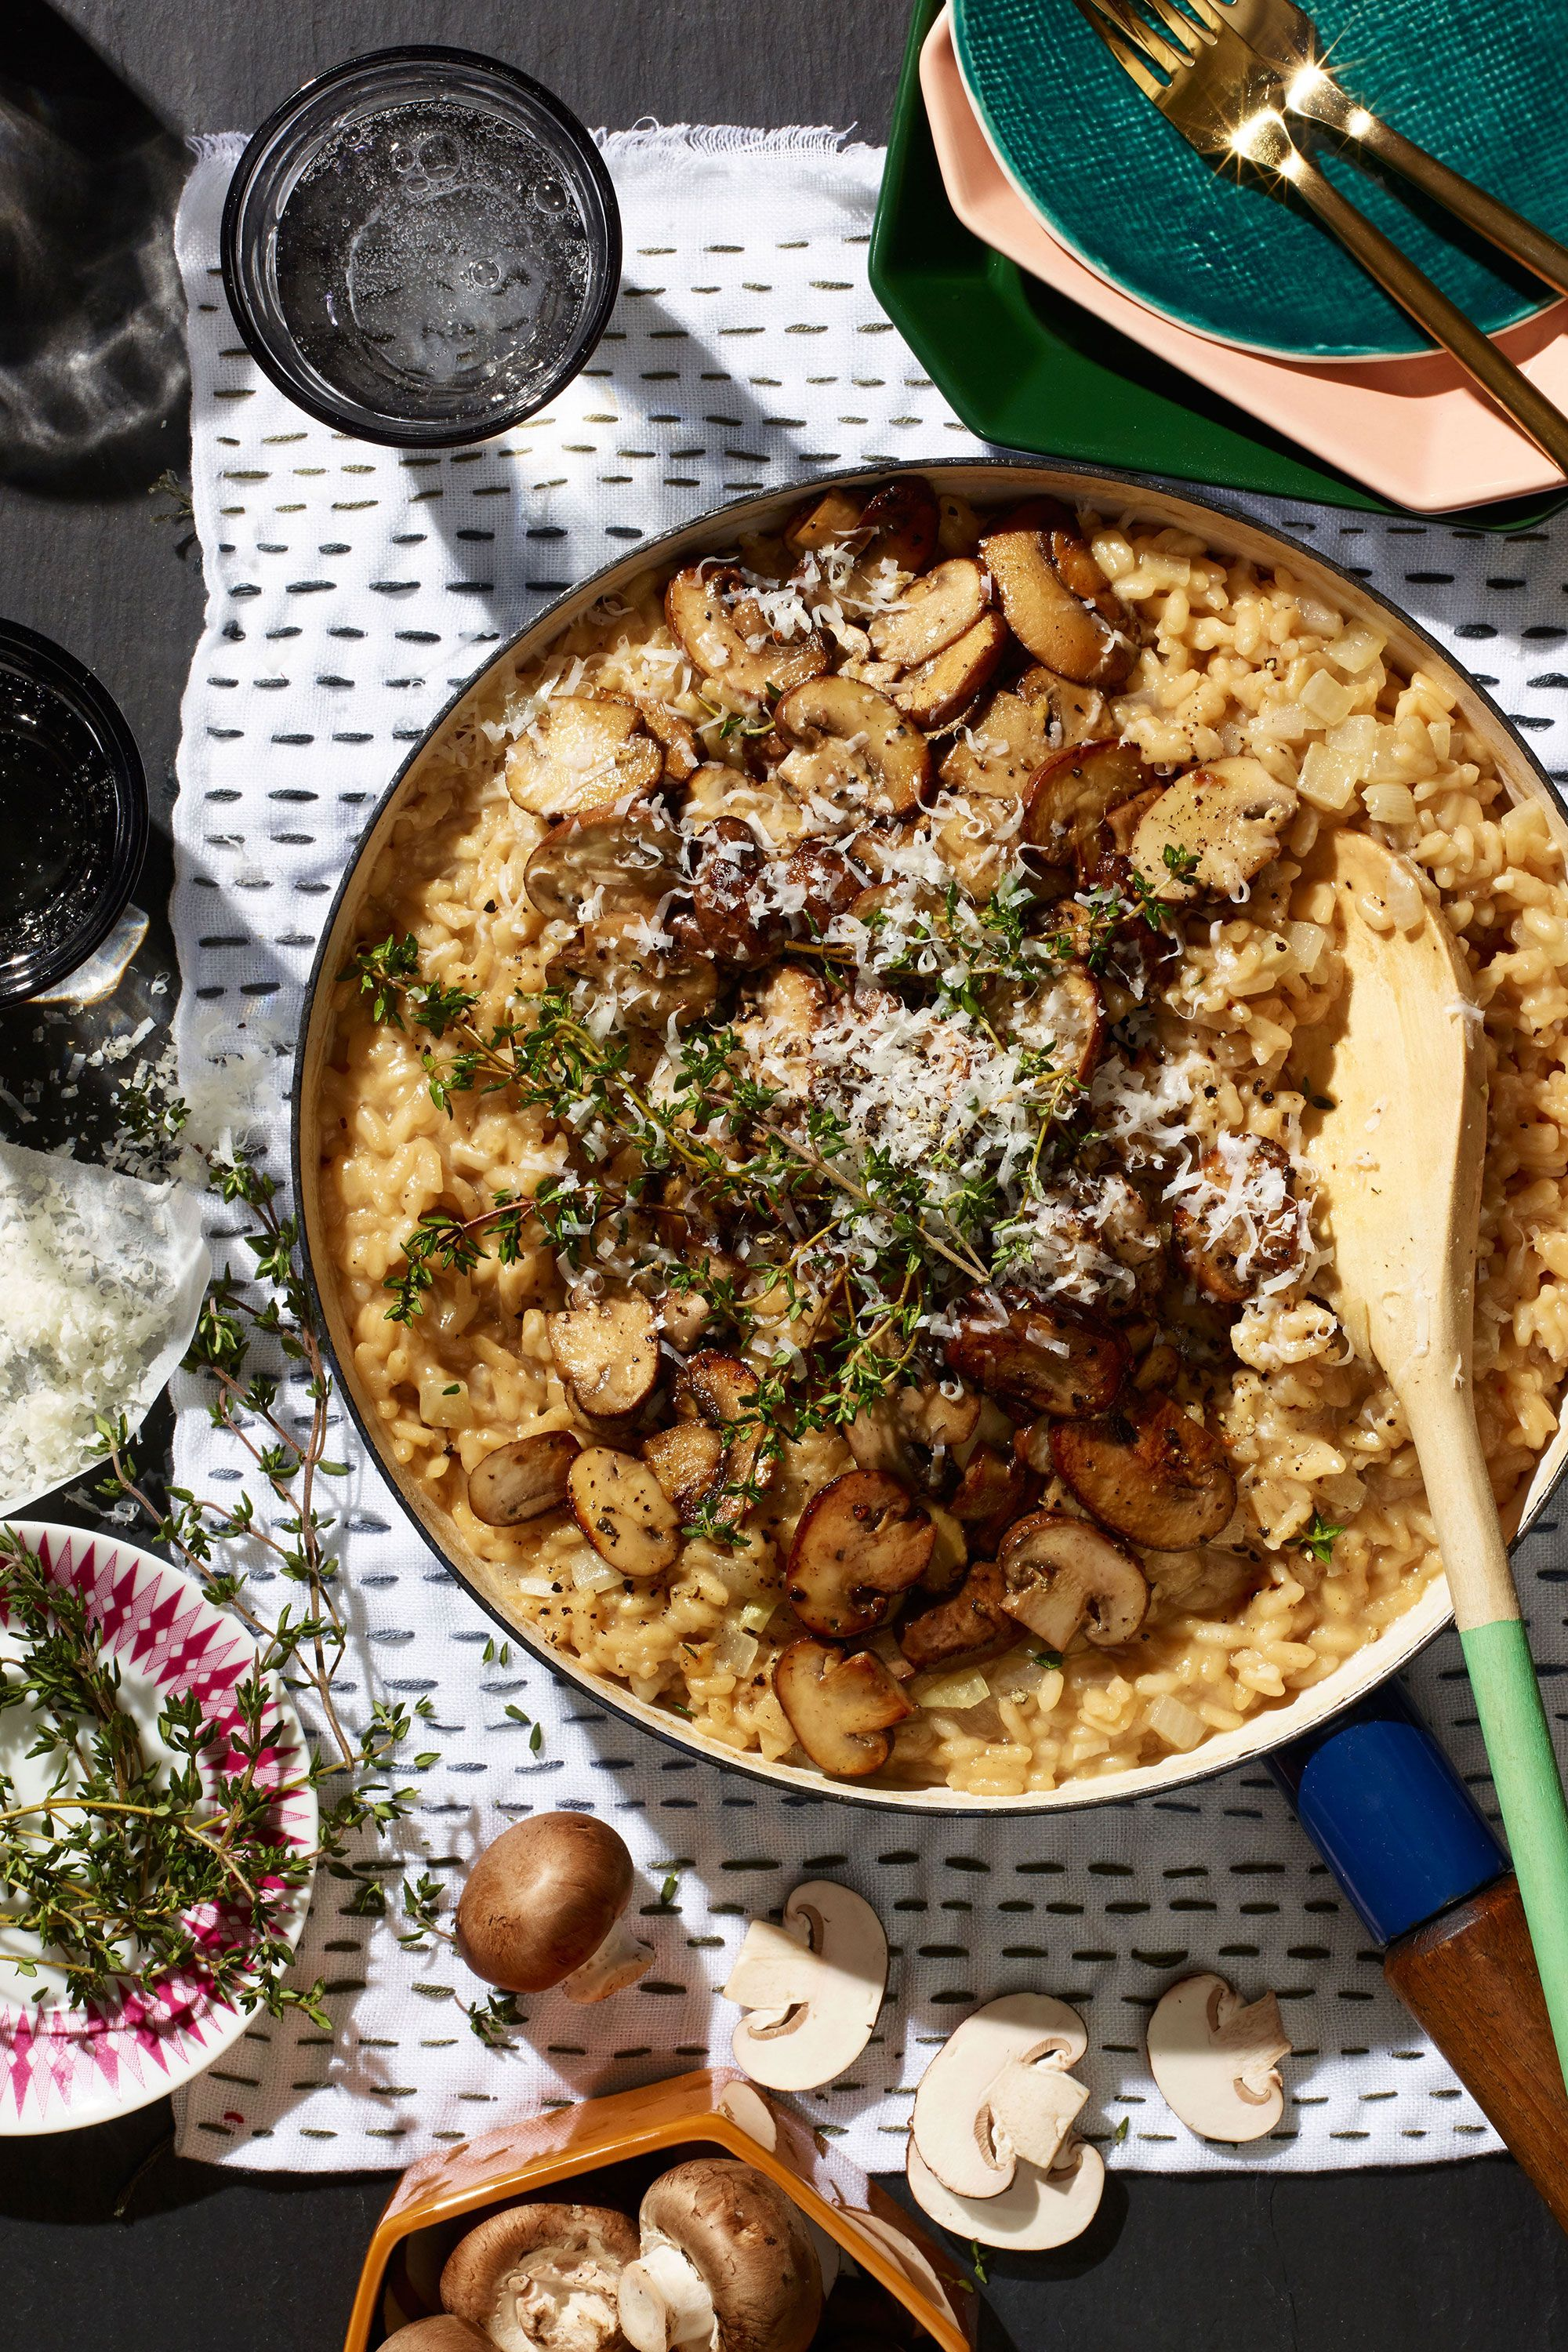 "<p>Just two things this dinner party scene-stealer needs: a patient cook and a table of hungry guests.</p>  <p>Get the recipe from <a href=""http://www.delish.com/cooking/recipe-ideas/recipes/a50043/black-tea-and-mushroom-risotto-recipe/"" target=""_blank"" data-tracking-id=""recirc-text-link"">Delish</a>.</p>  <section></section>"